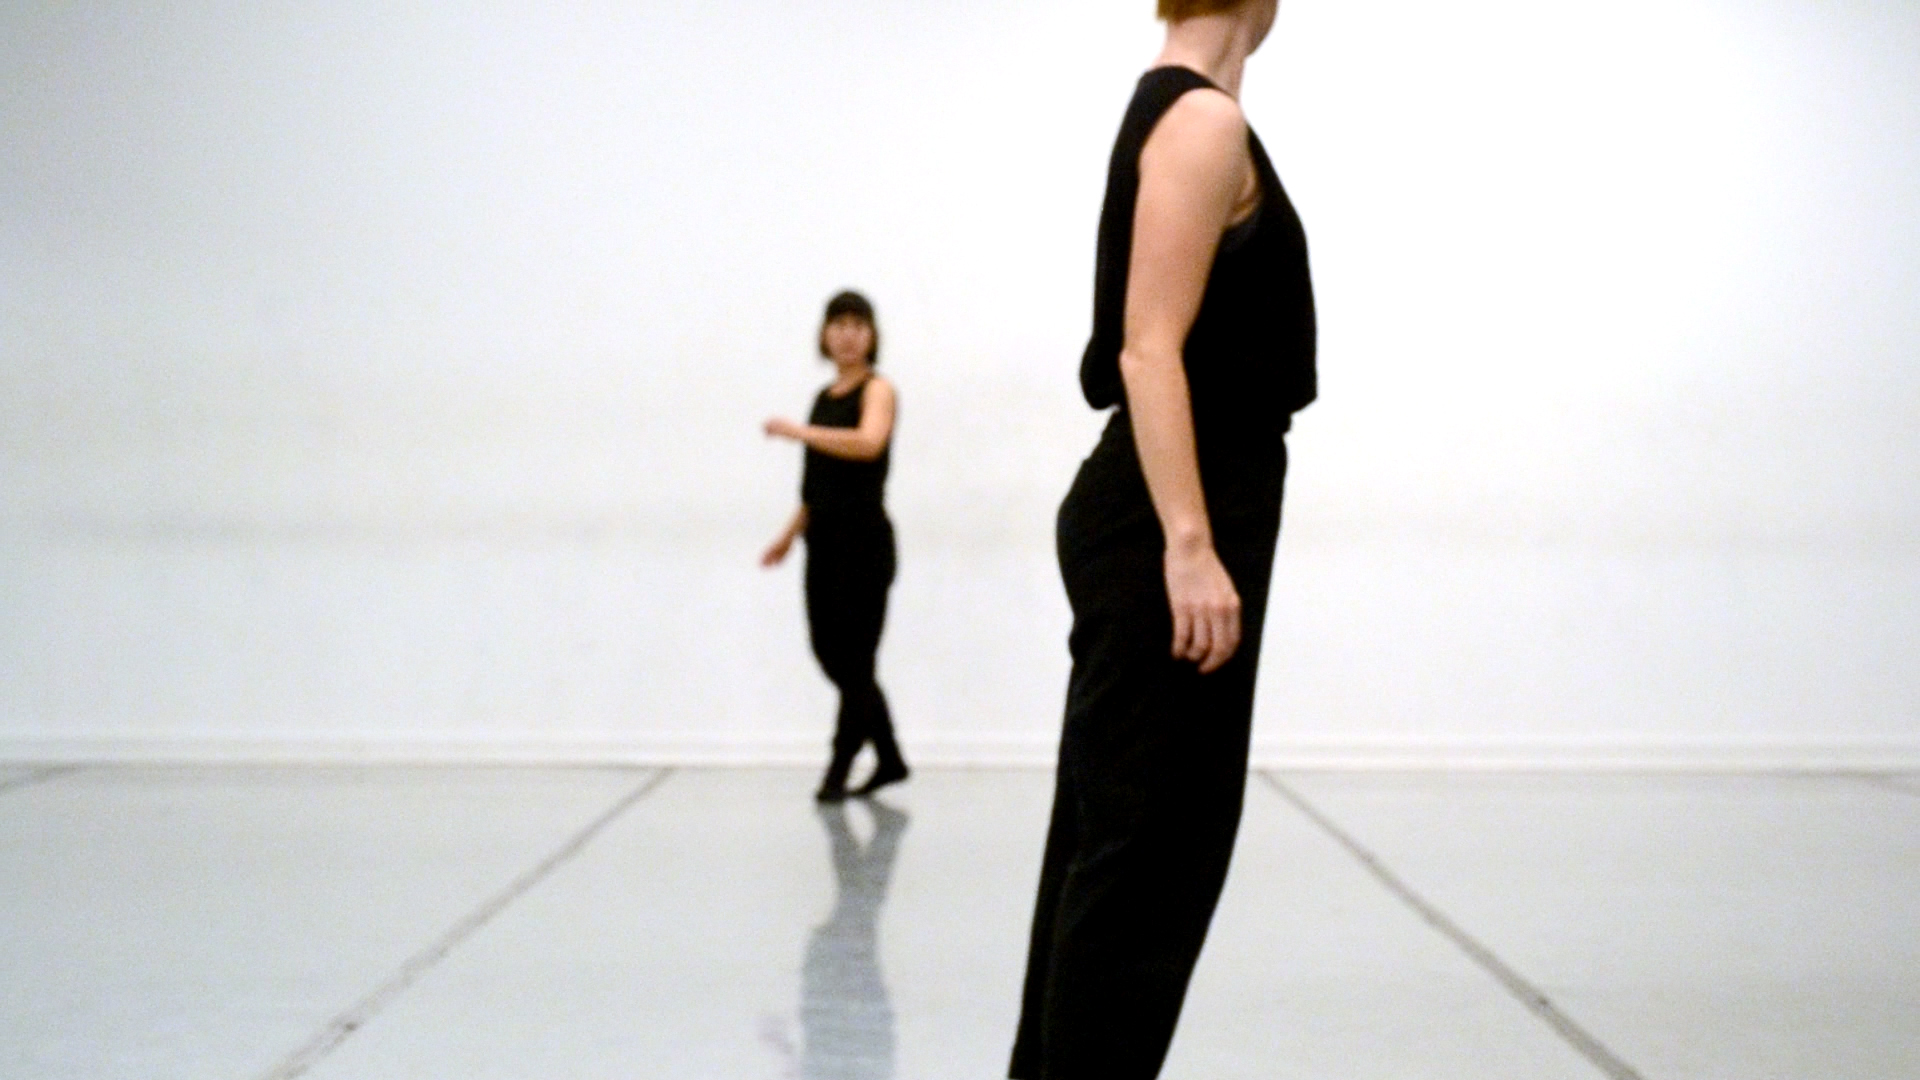 video still,  2014 - 2015   Left to Right: Jane Sato and Meg Weeks